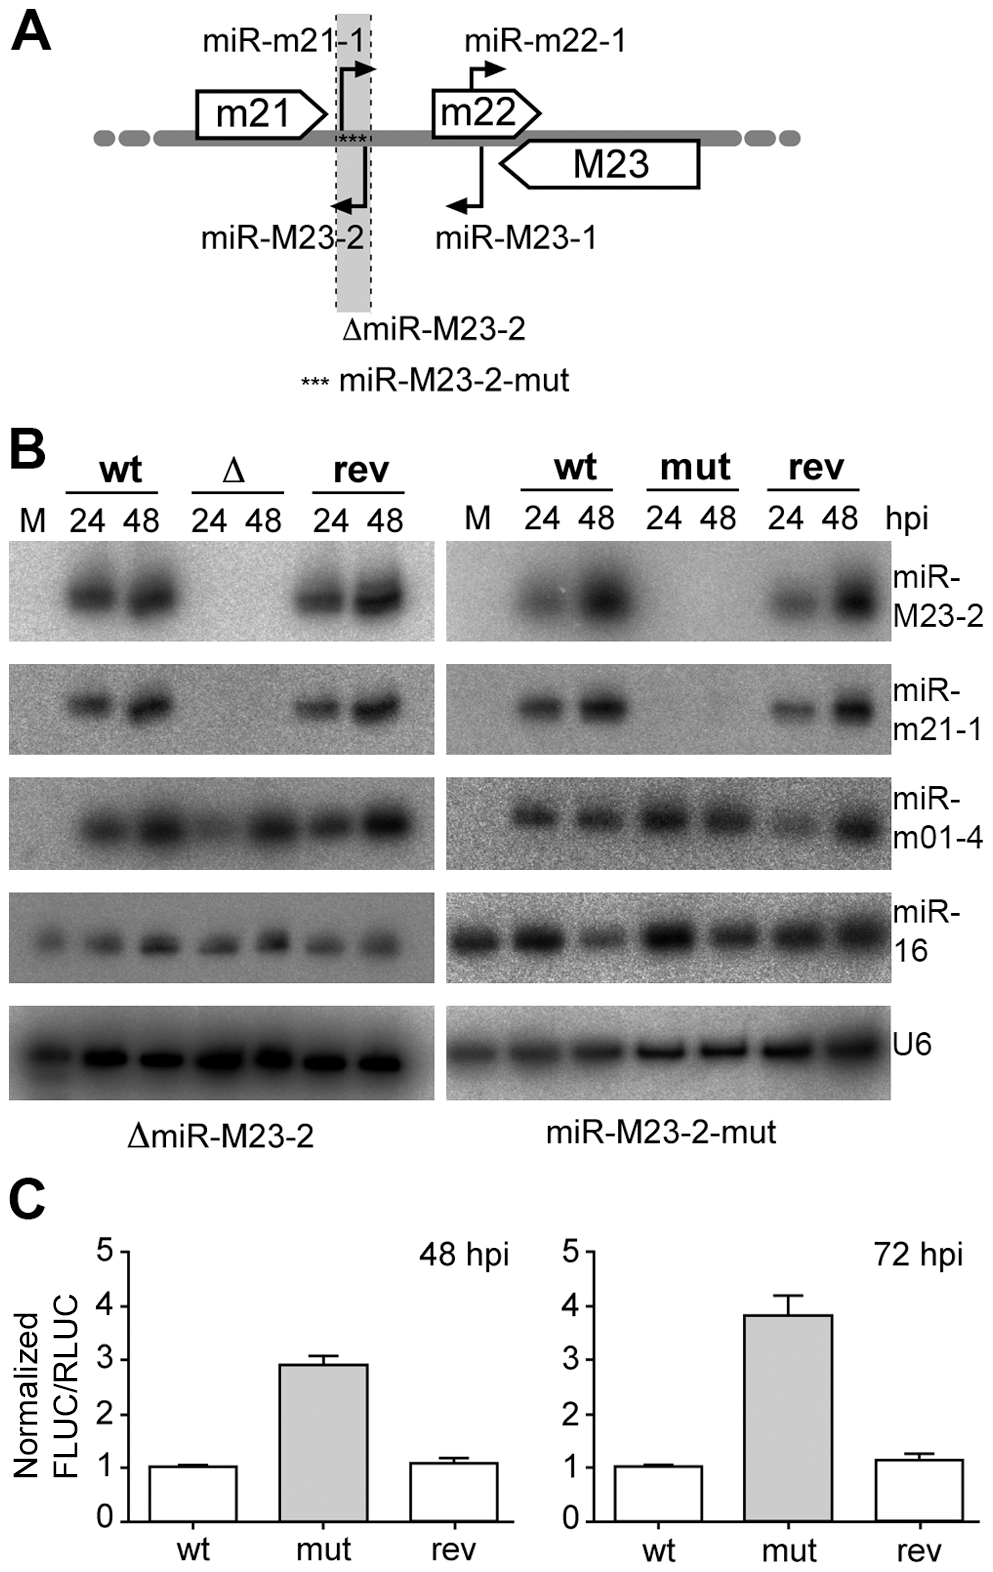 Obtention and characterization of miRNA mutant MCMV.